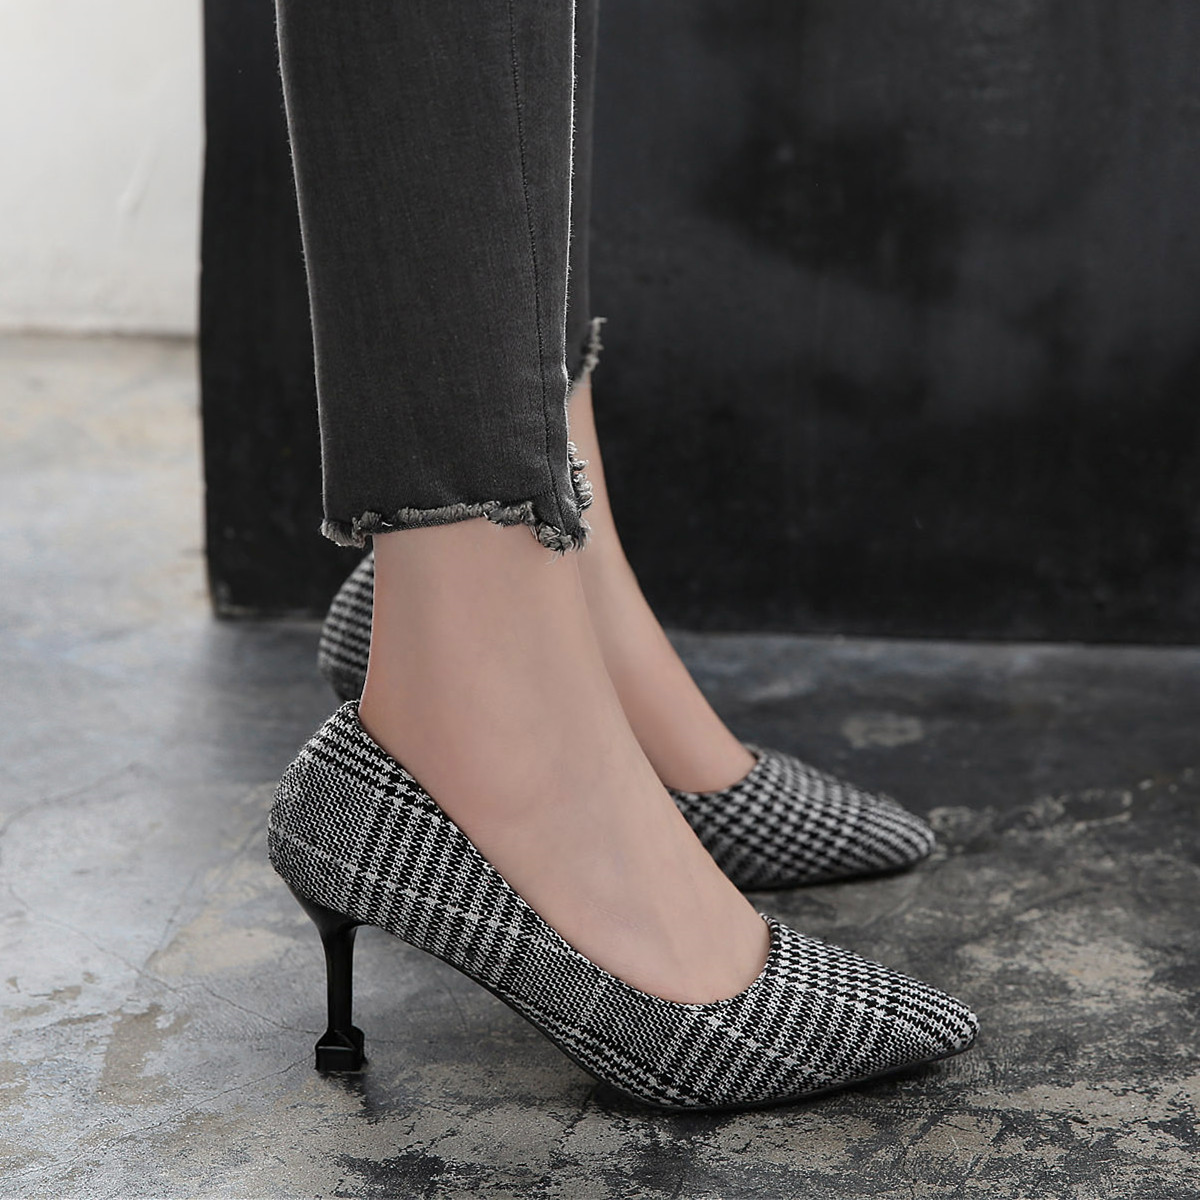 office shoes women new arrival 2019 women pumps evening shoes sexy high heels luxury shoes women designers fetish high heels